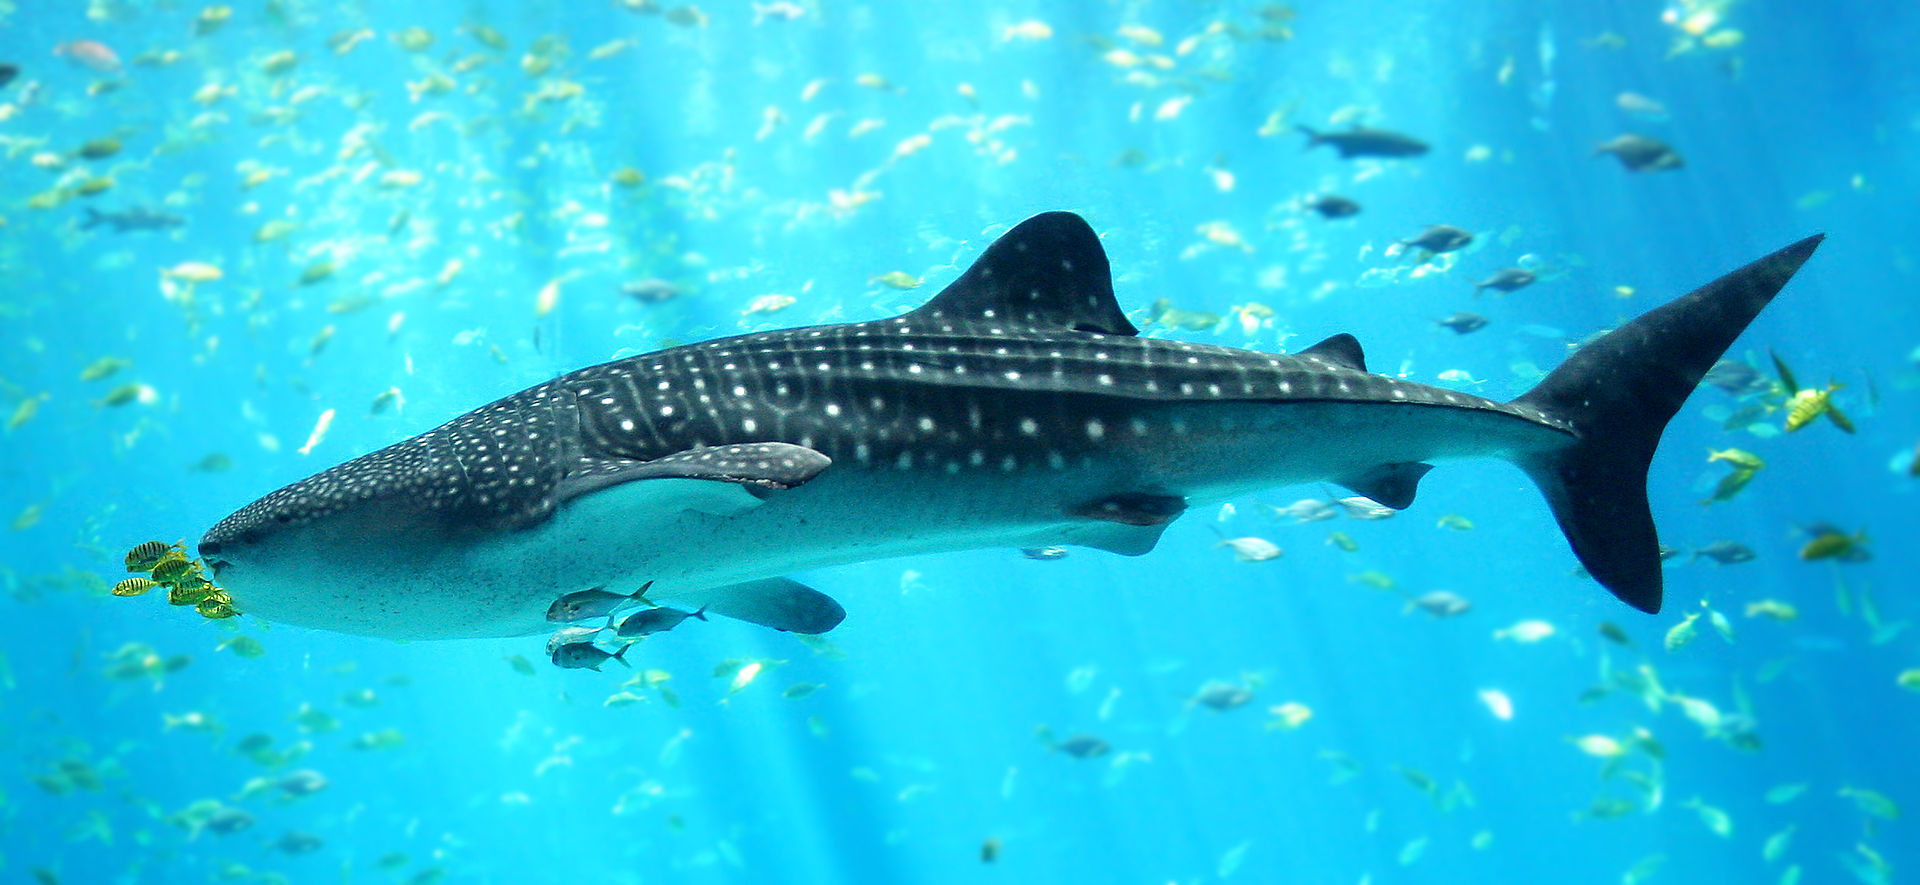 Whale sharks have been up-listed to Endangered on the IUCN Red List. Photo by Zac Wolf, From Wikimedia Commons, CC BY-SA 2.5.